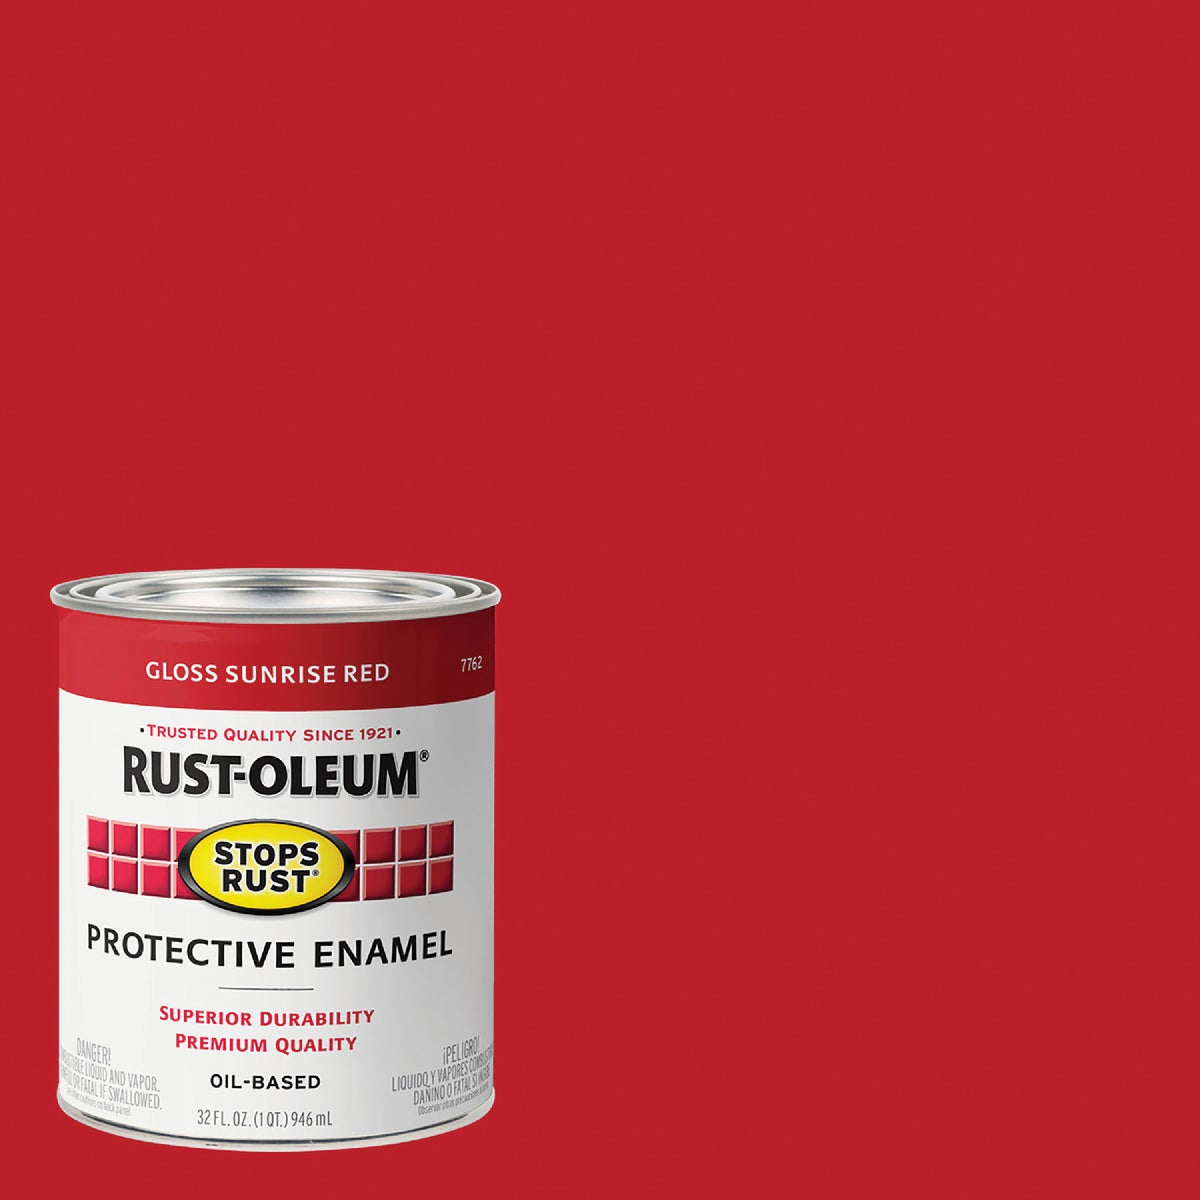 SUNRISE RED ENAMEL - 7762-502 by Rustoleum